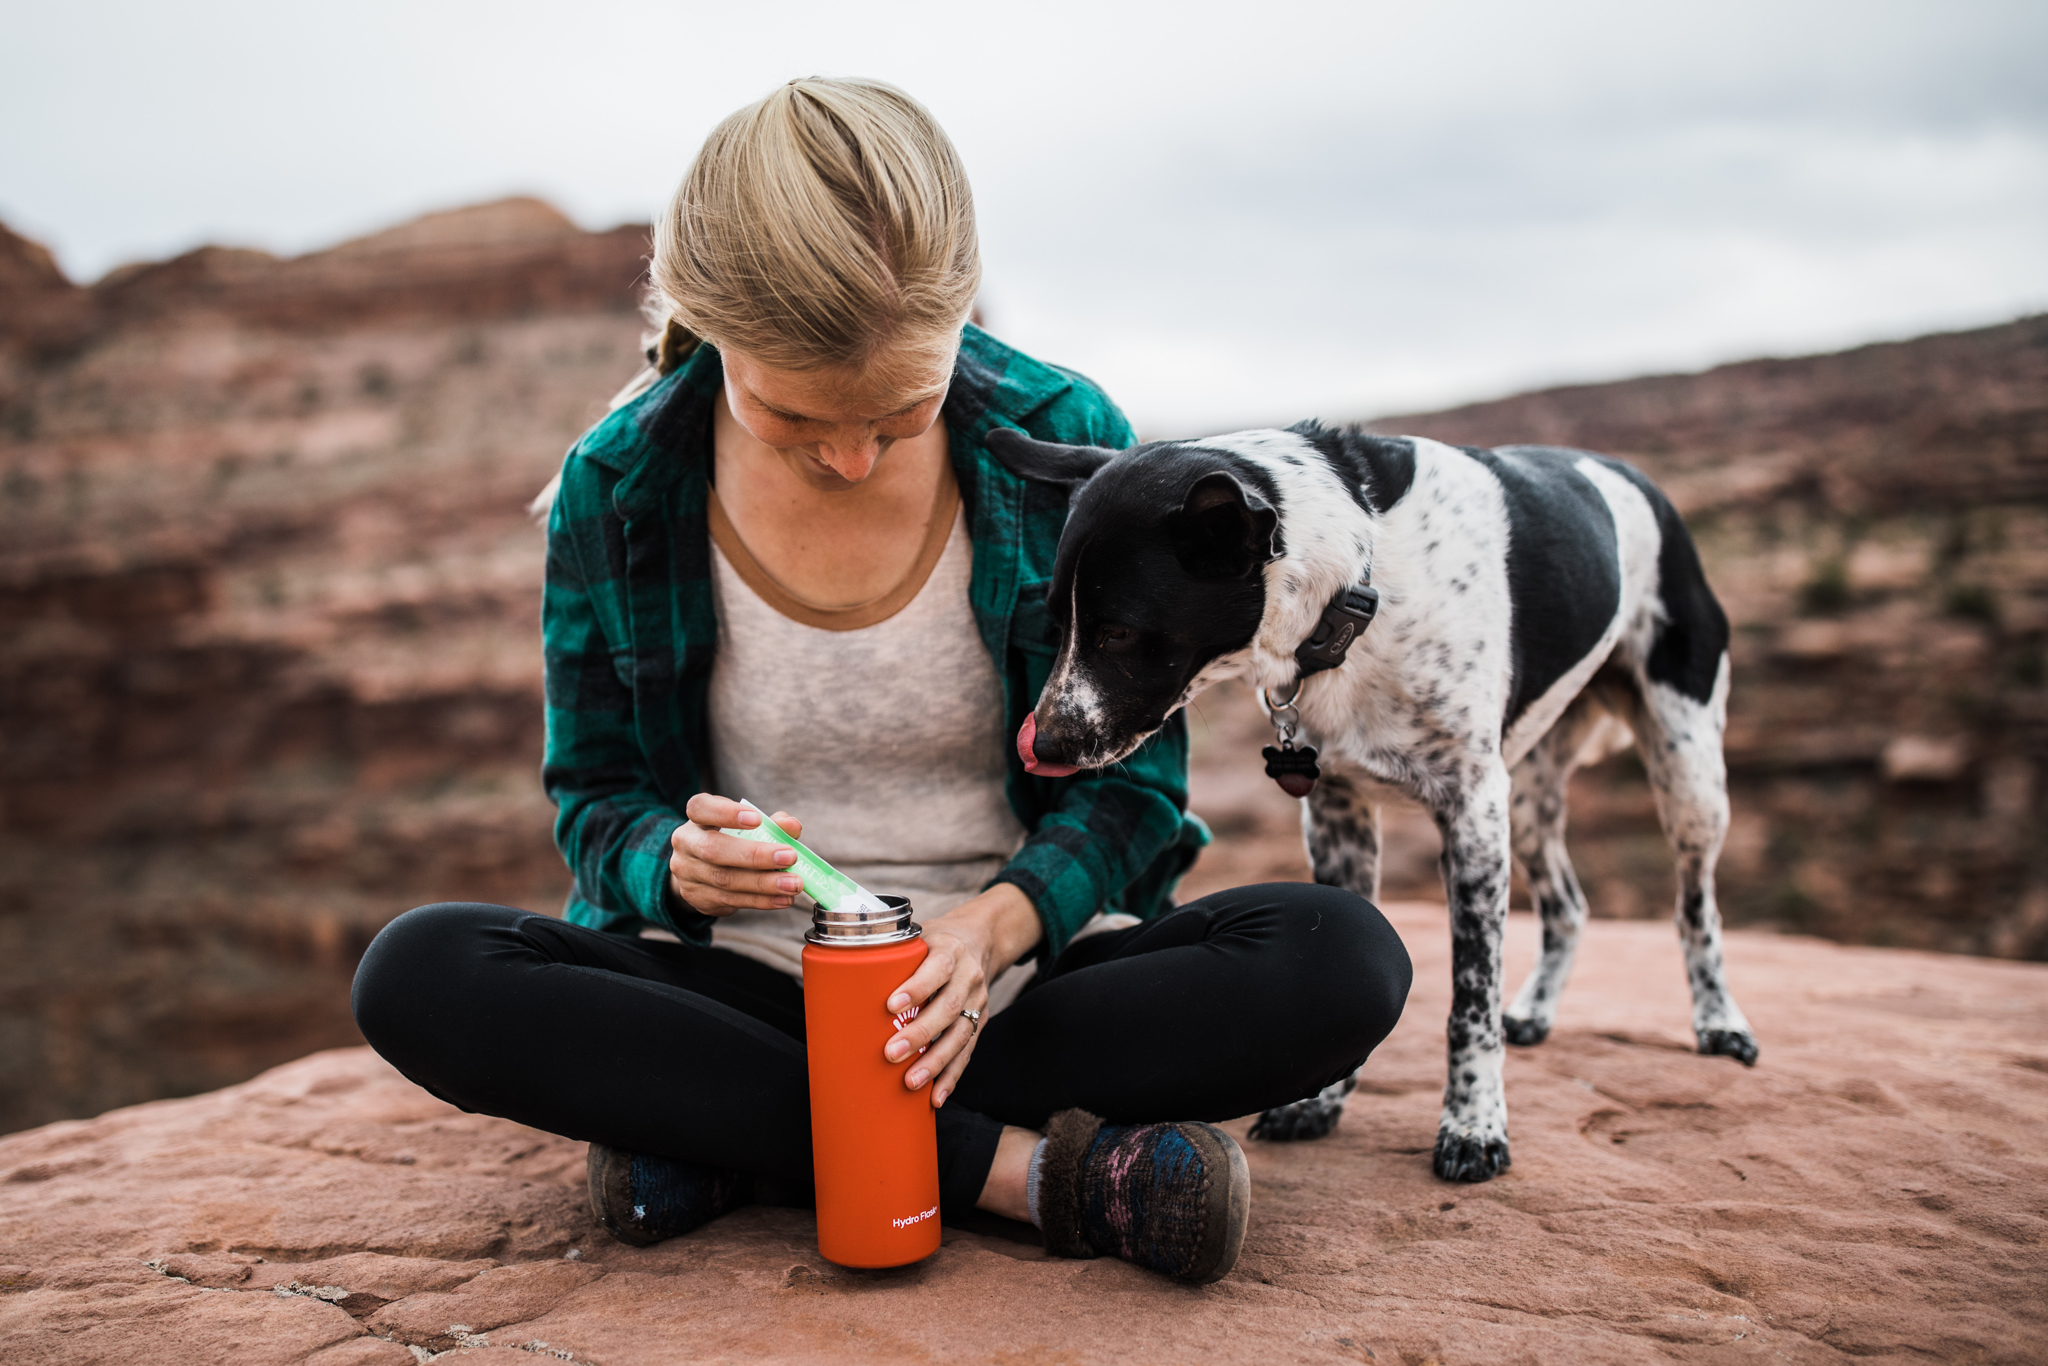 coffee and camping in moab utah | utah and california adventure elopement photographers | the hearnes adventure photography | www.thehearnes.com